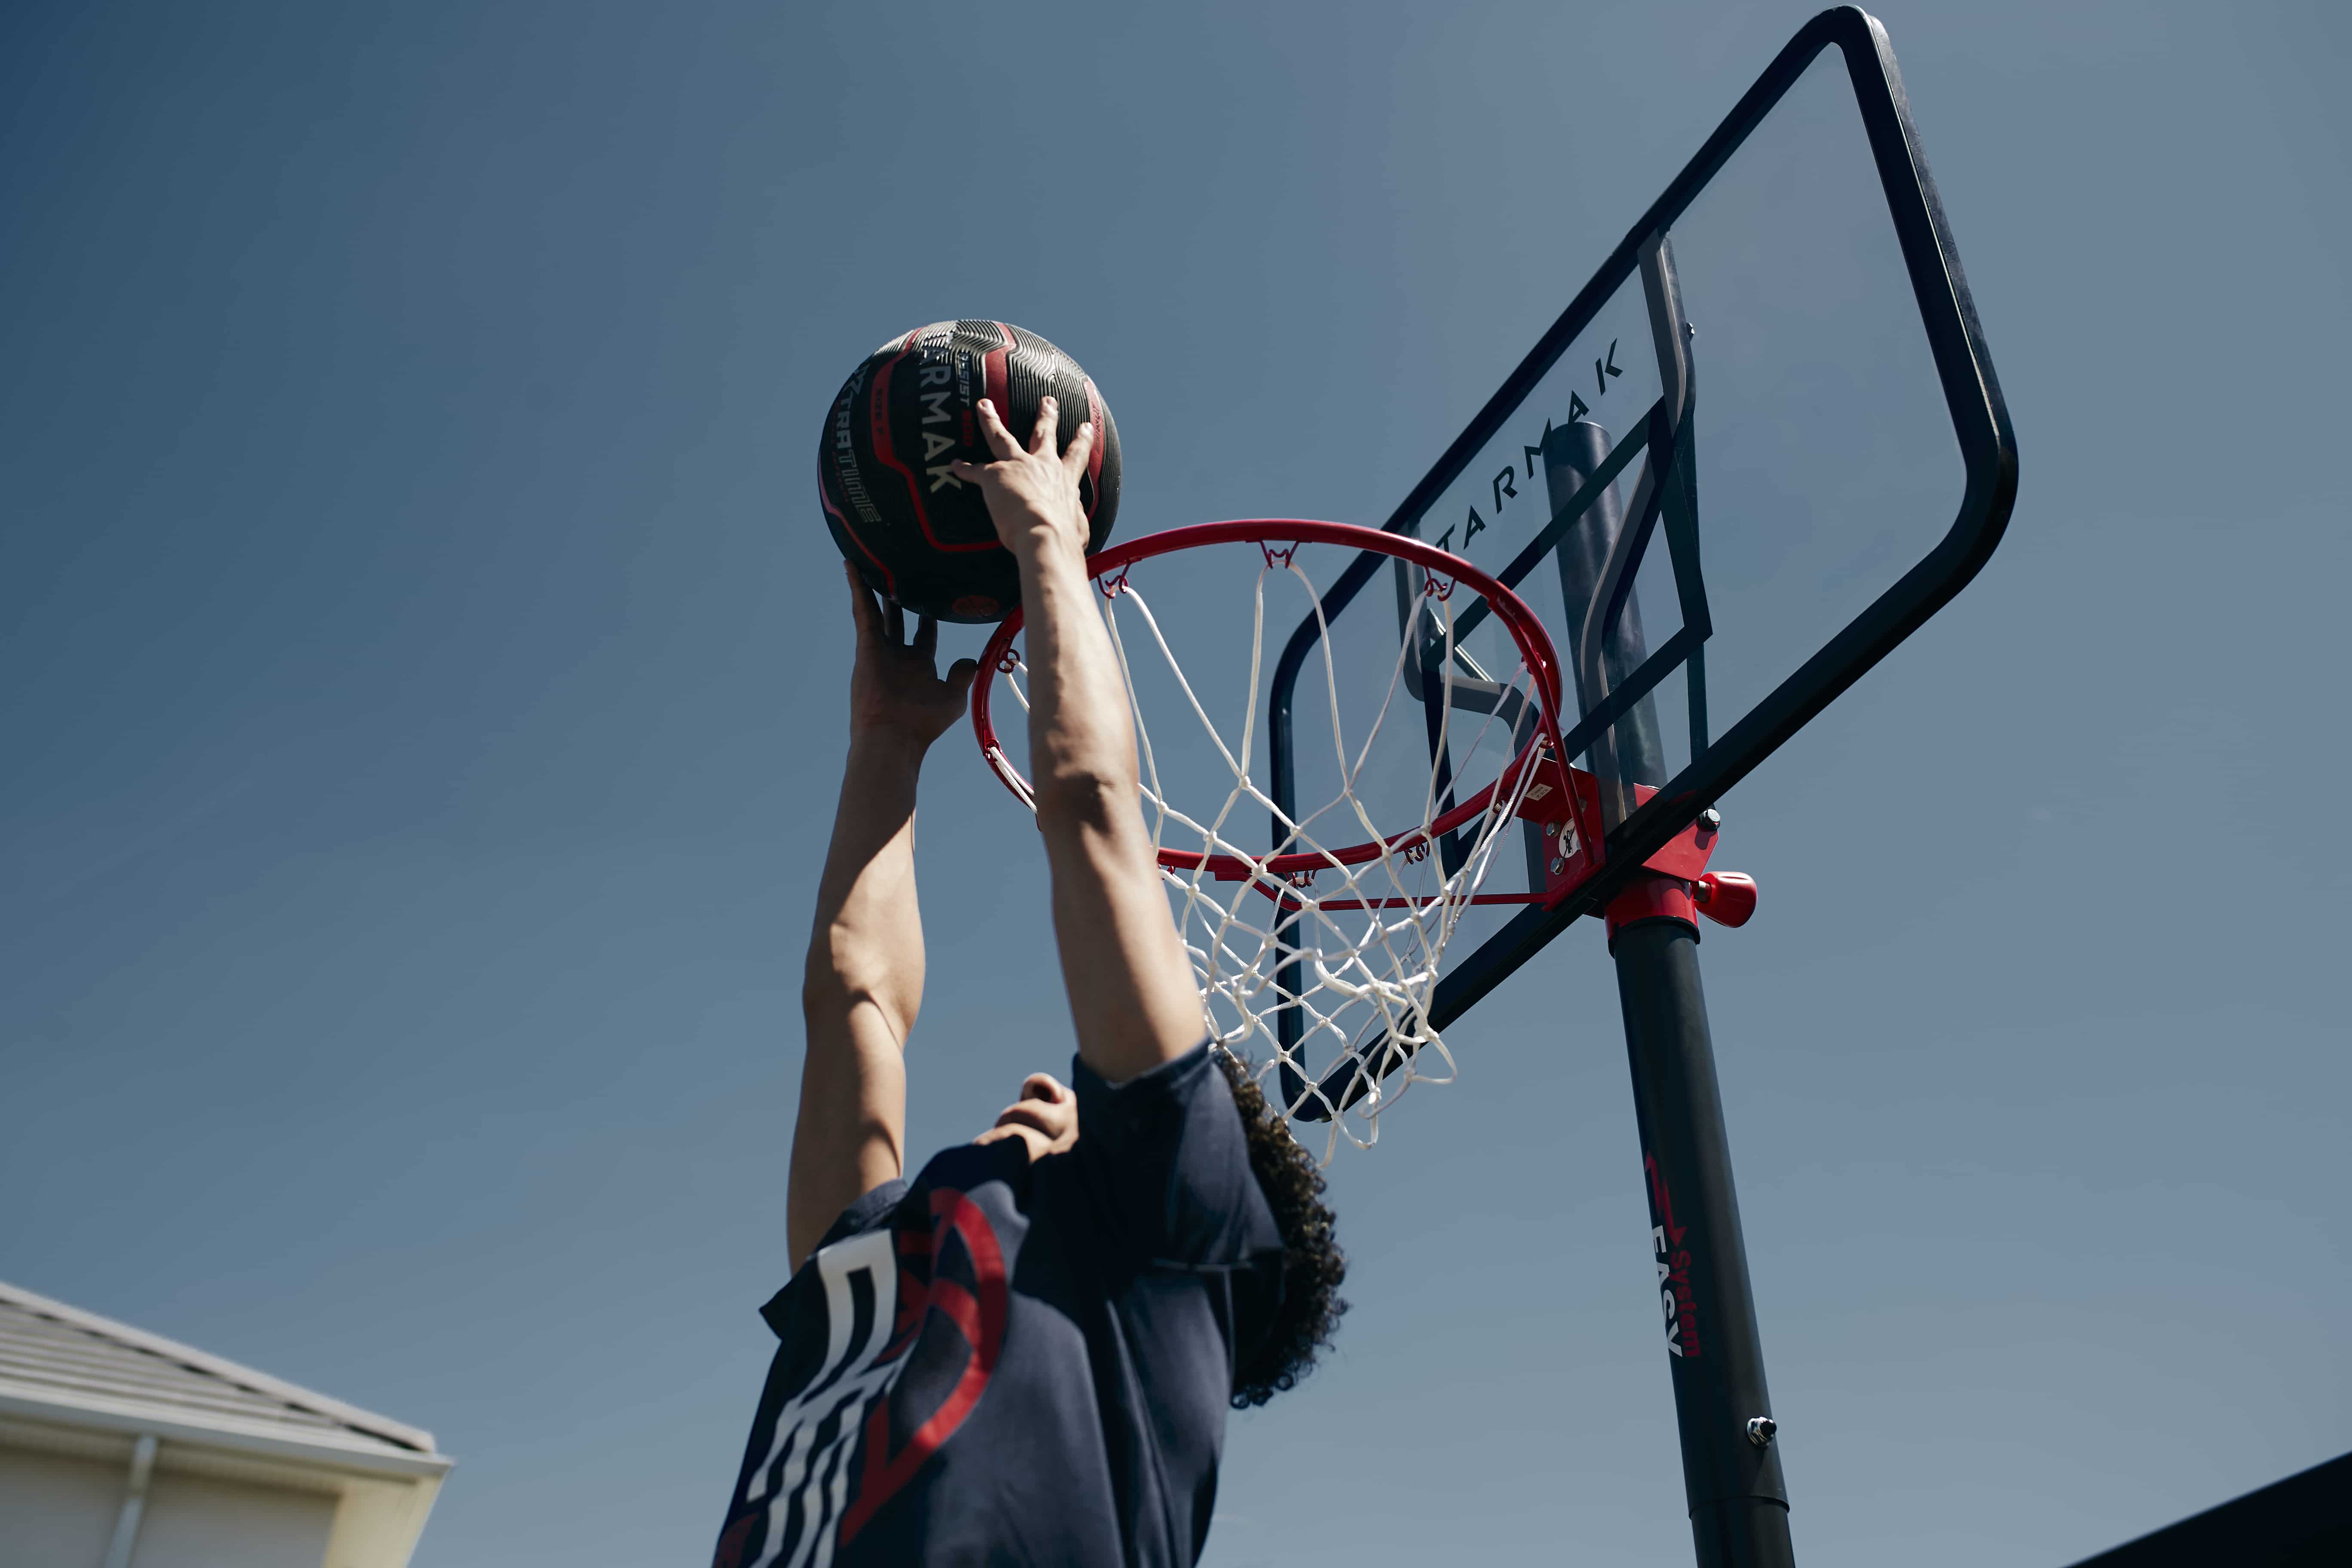 8 best exercises for basketball players from home